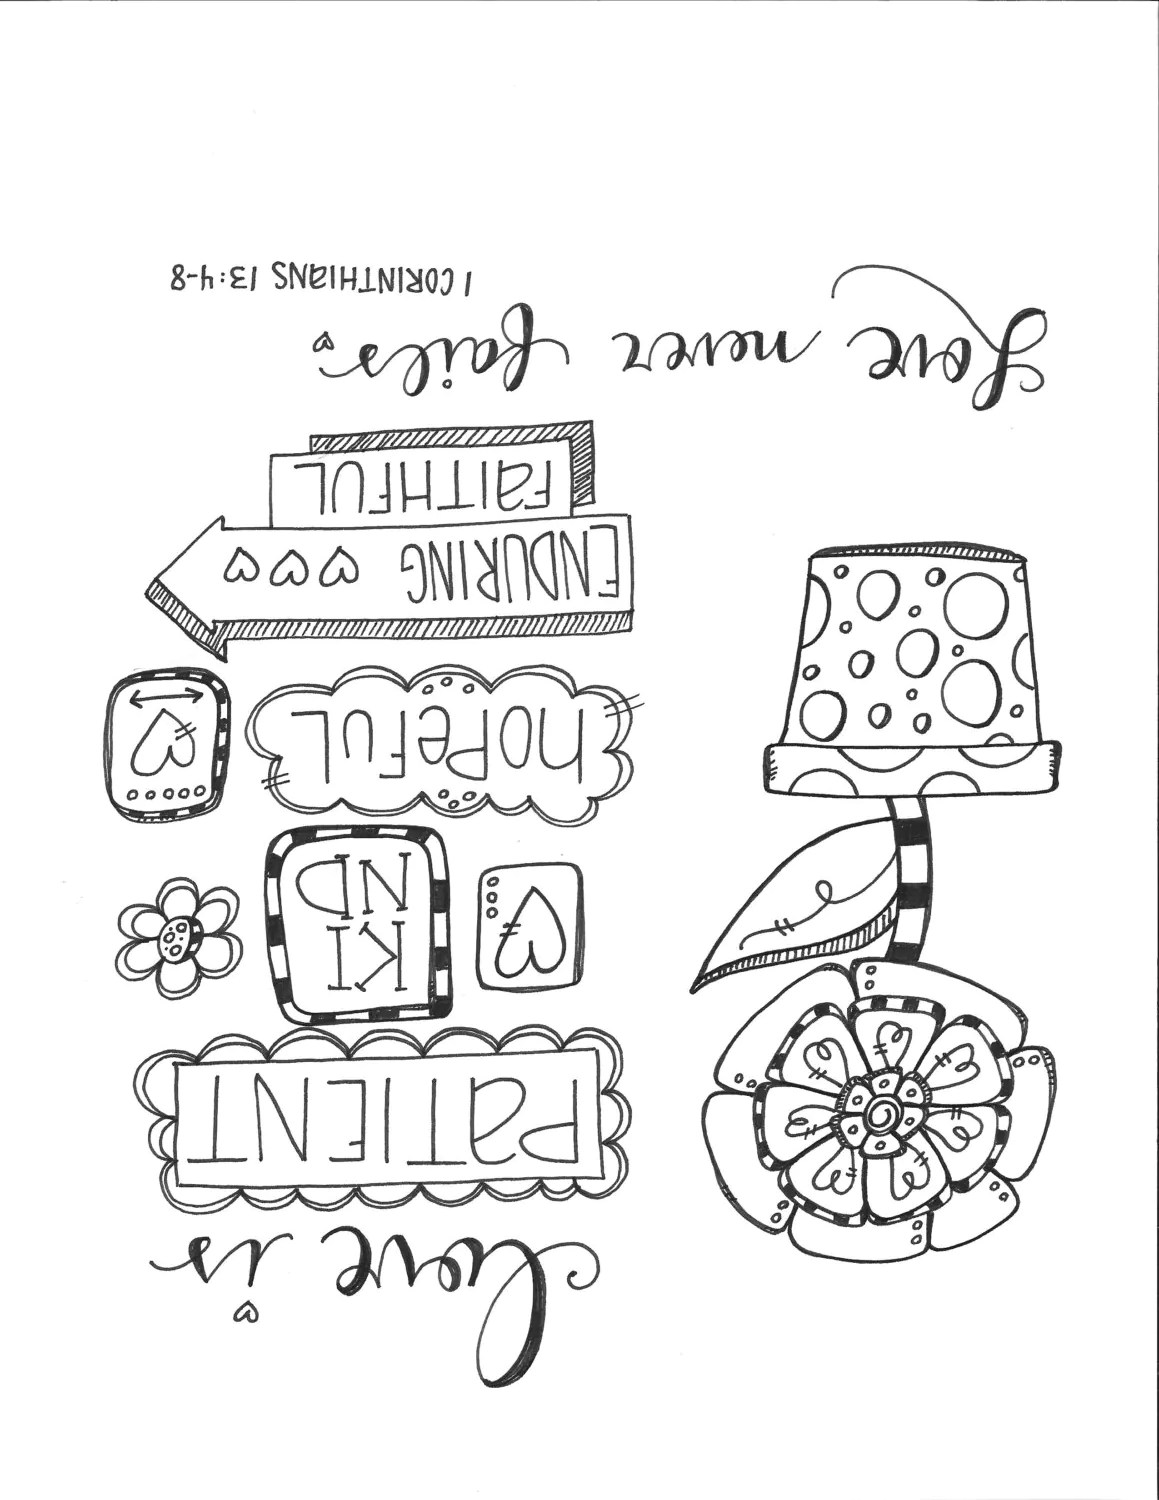 Pagina Da Colorare Di Bibbia Journaling Love Never Fails